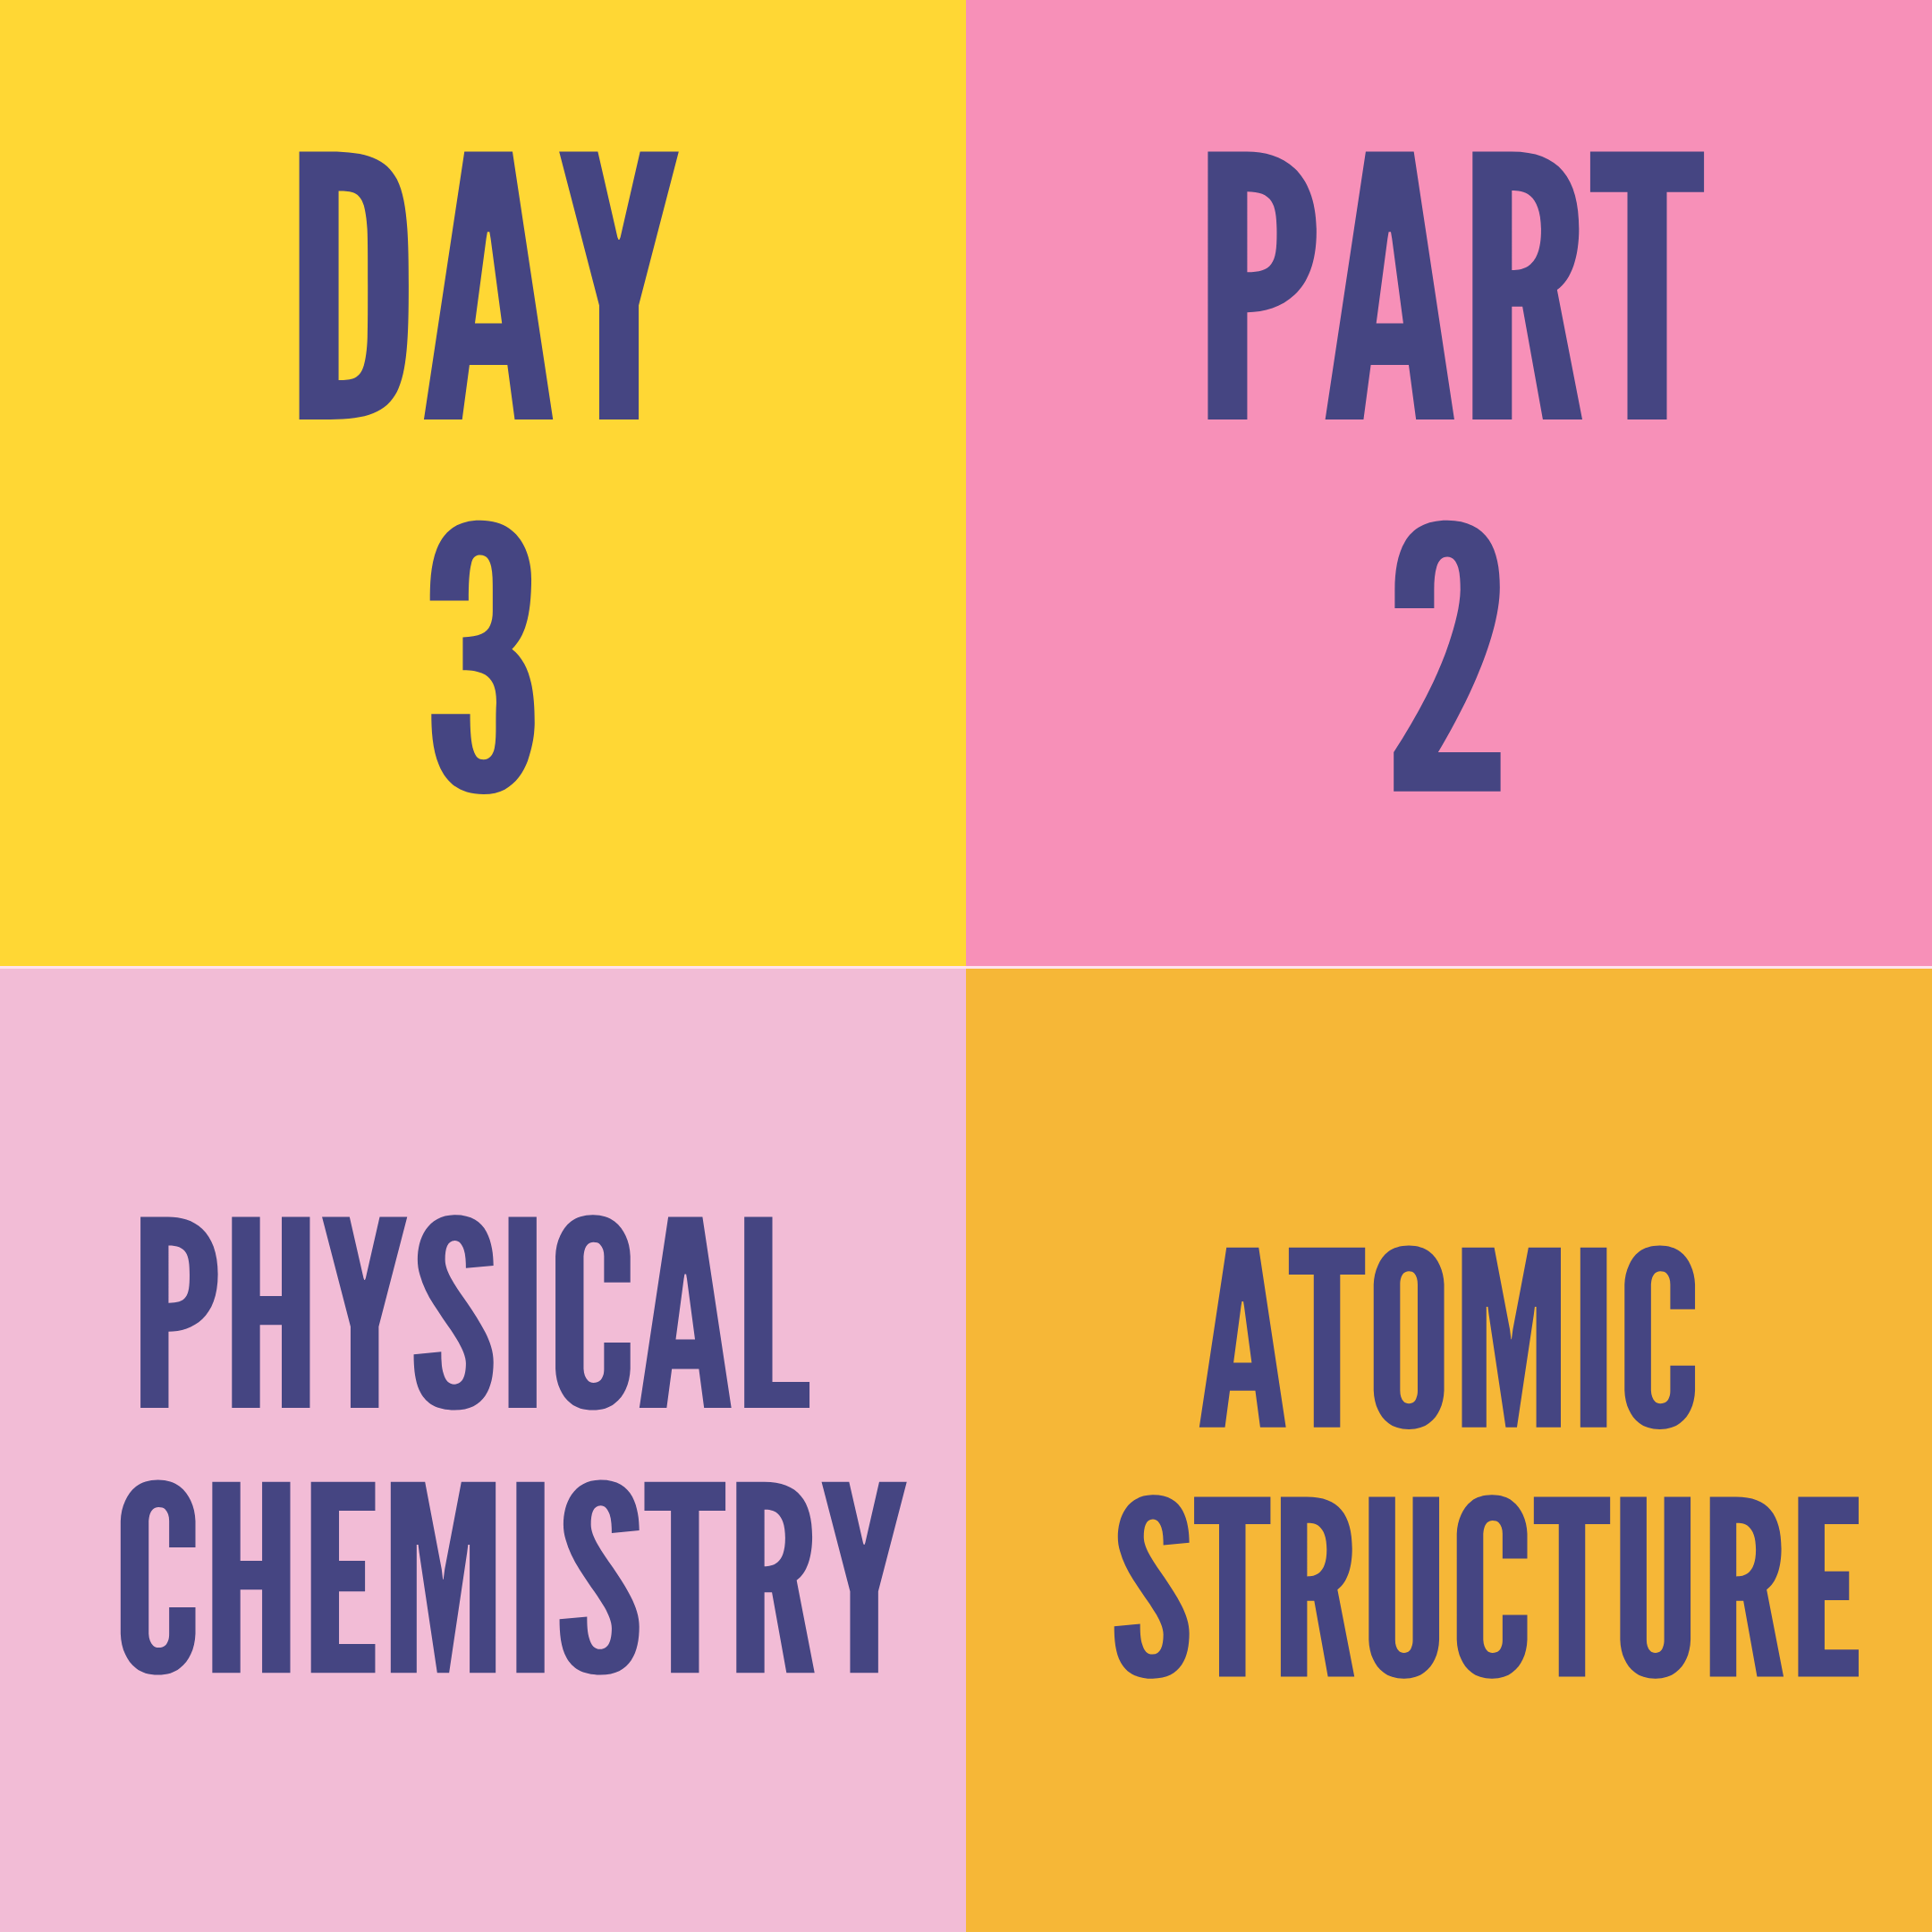 DAY-3 PART-2 ATOMIC STRUCTURE